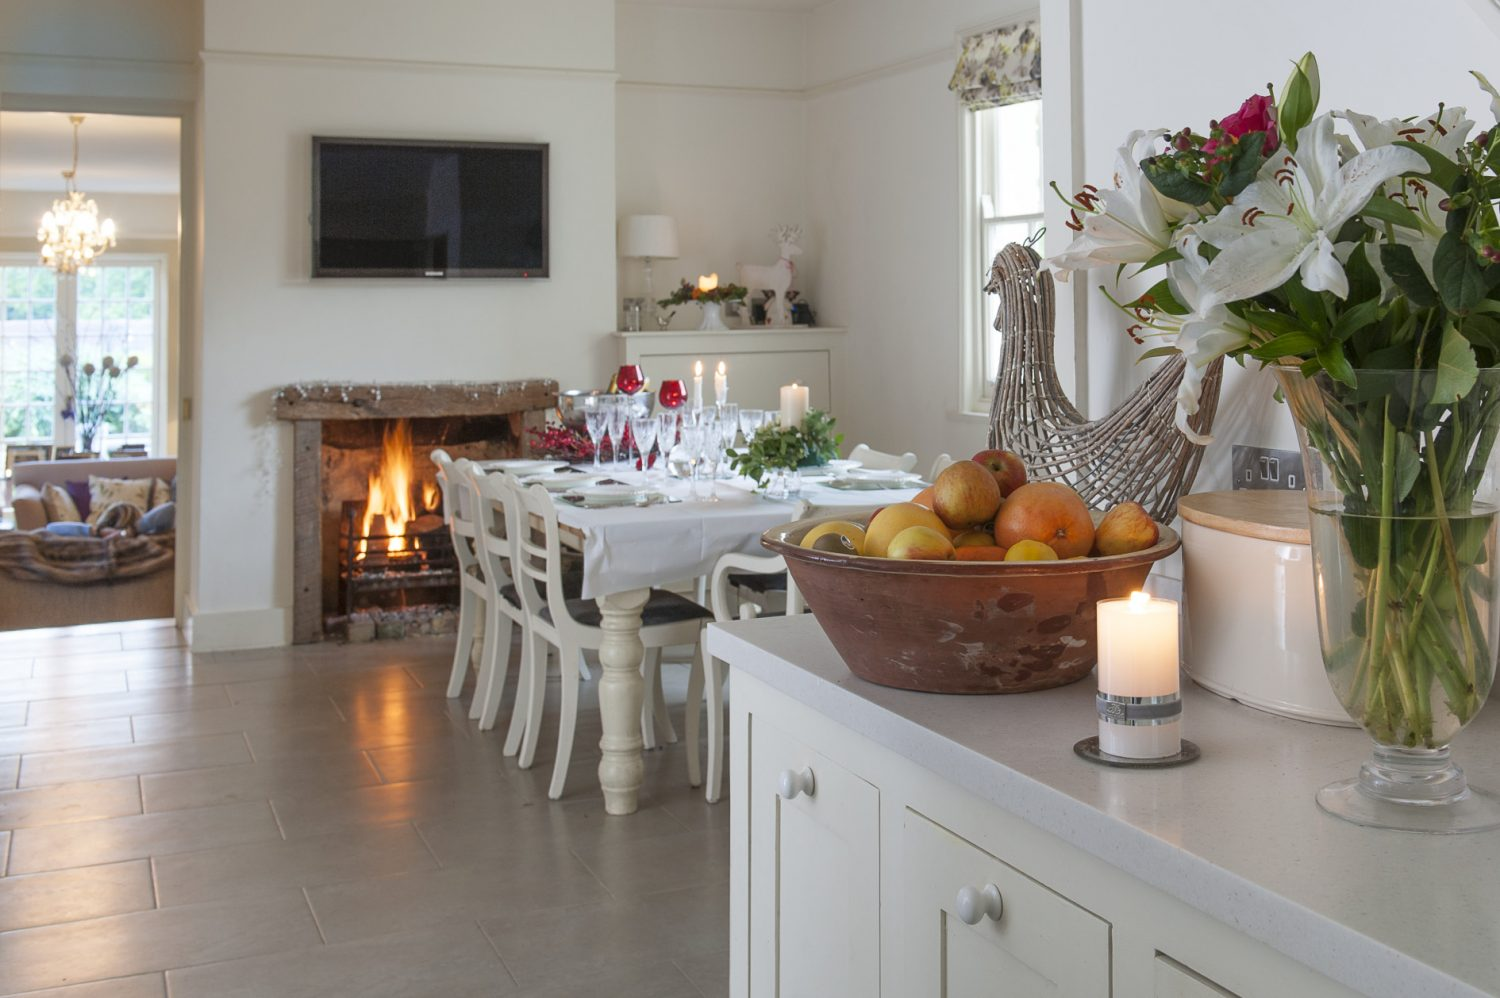 The open-plan kitchen and dining area, complete with open fire